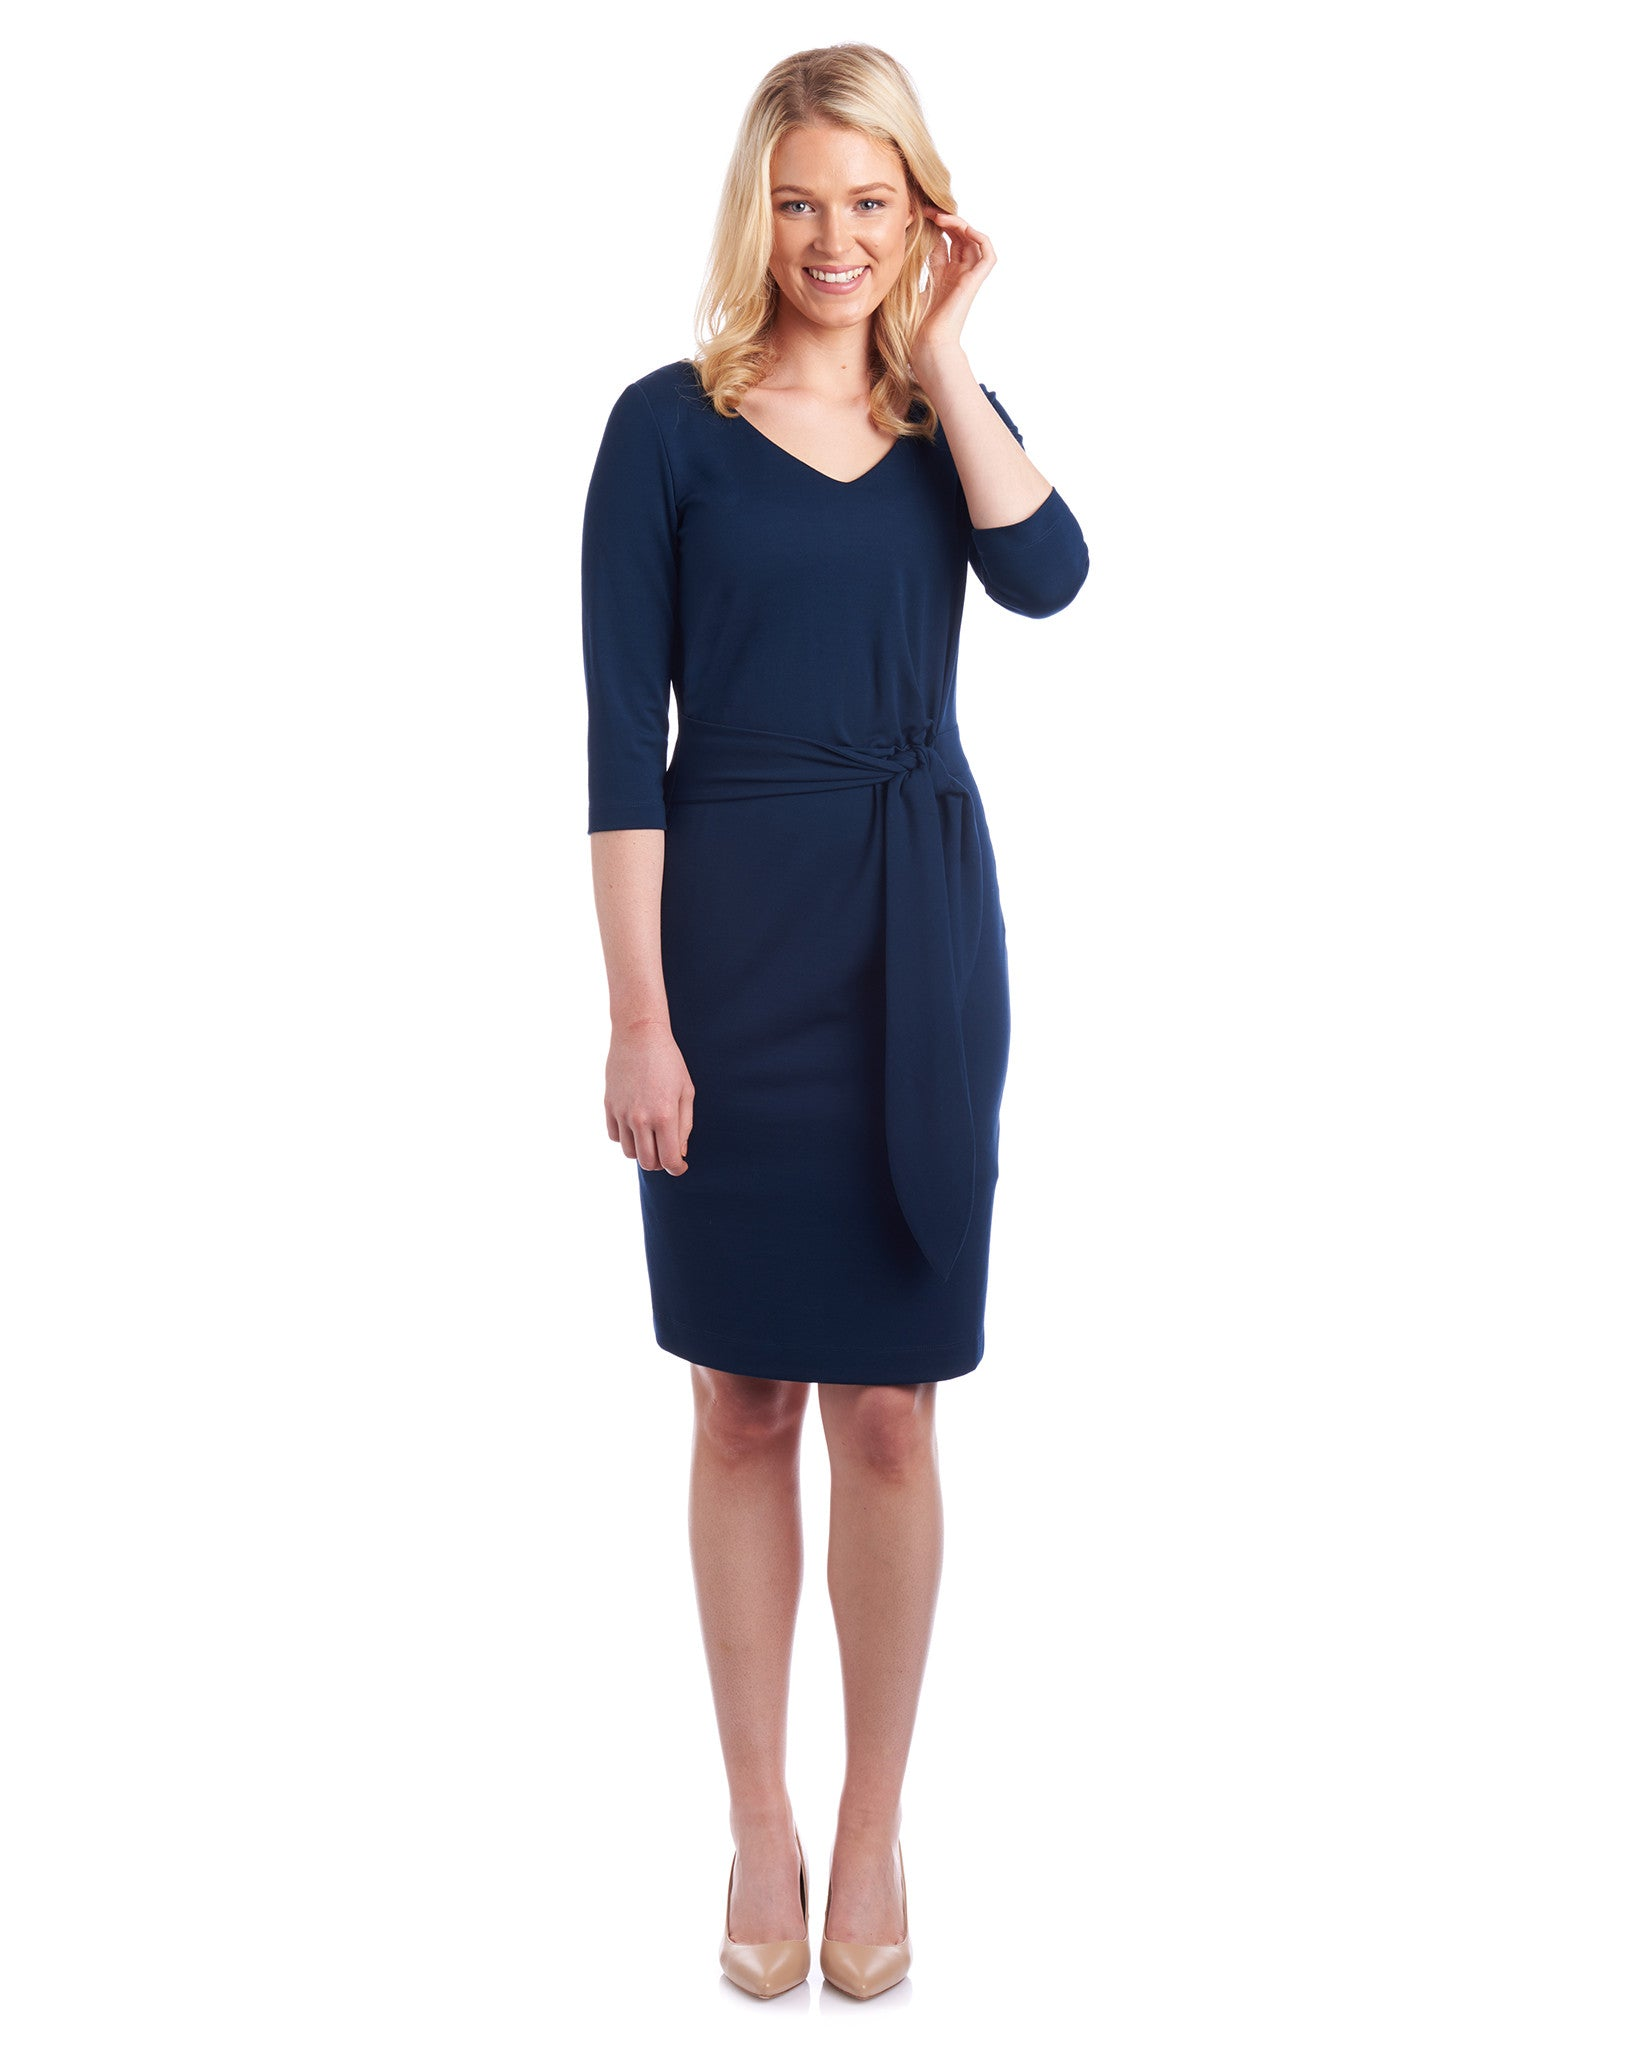 Tahlo: Anna Side Tie Pencil Dress loves curves and is great for most body shapes